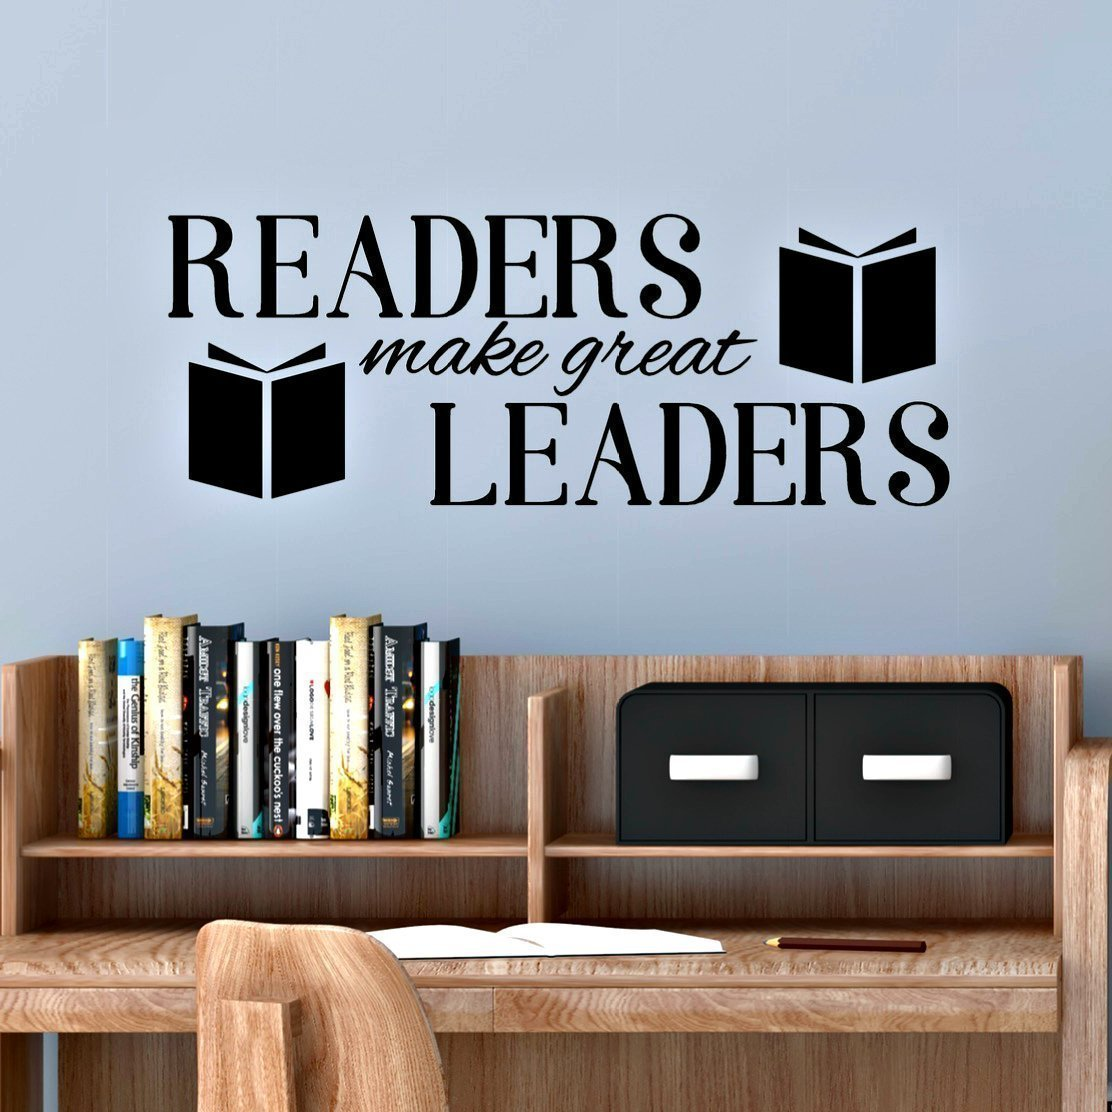 Amazon reading corner decal readers make great leaders amazon reading corner decal readers make great leaders classroom wall decal 30w x 11 h black handmade amipublicfo Choice Image